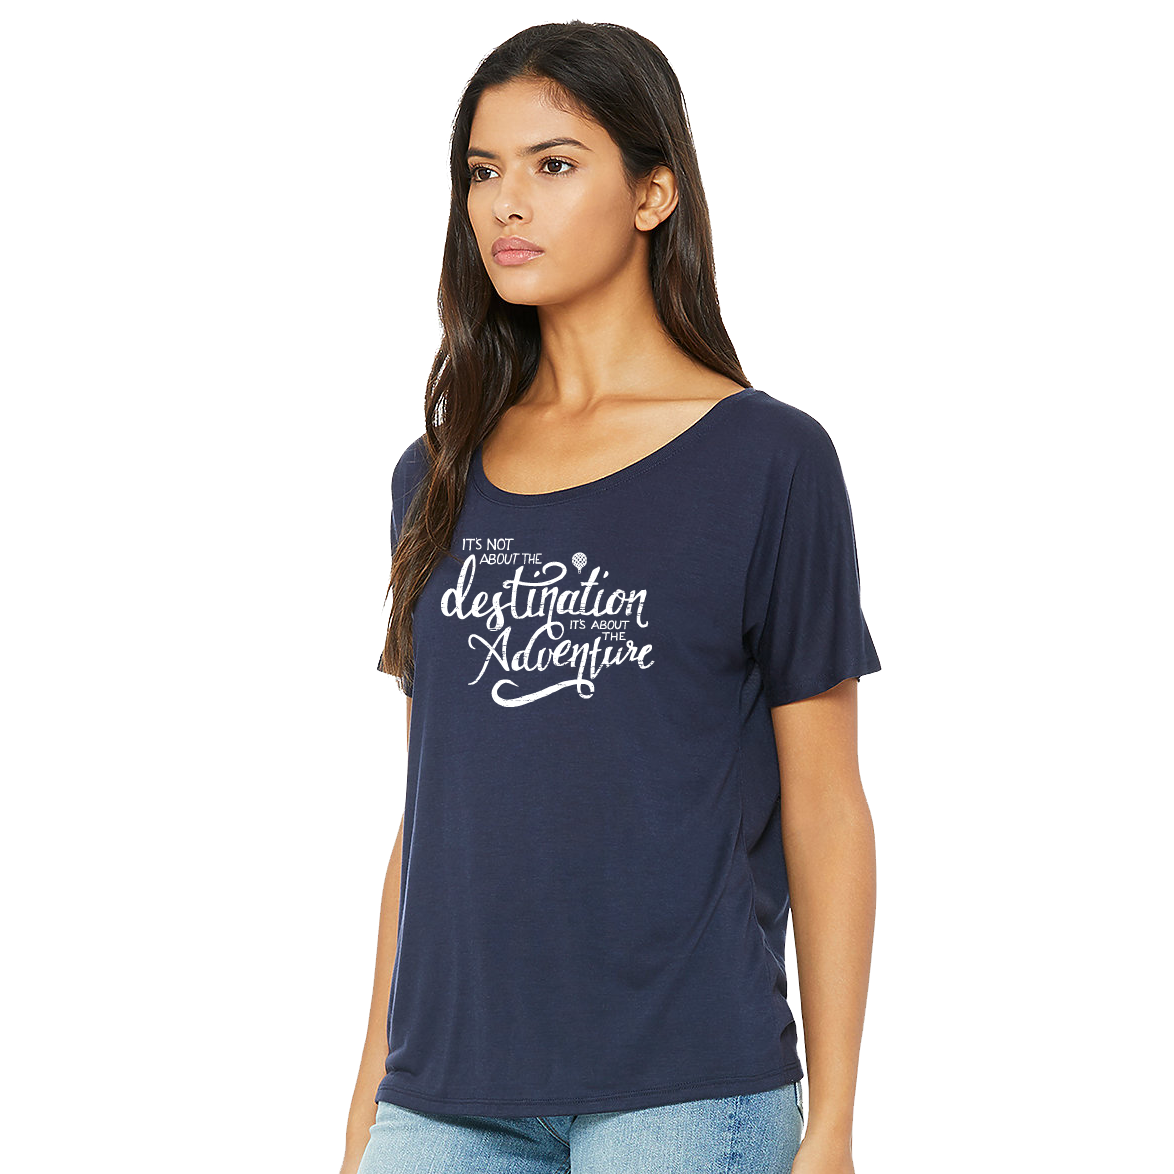 """IT'S NOT ABOUT THE DESTINATION, IT'S ABOUT THE ADVENTURE"" quote - premium slouchy"